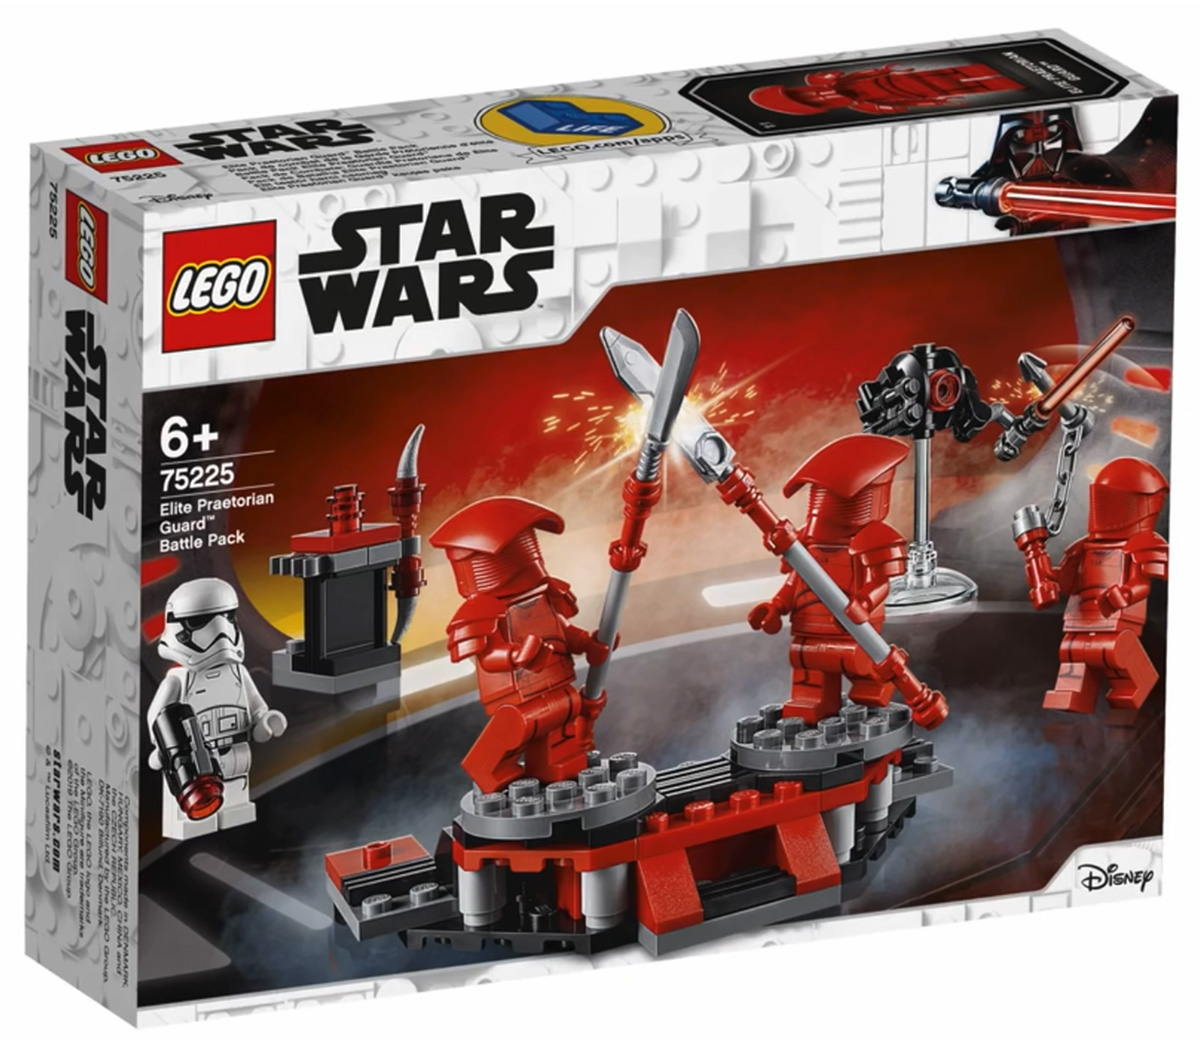 Lego Star Wars 2019 031 Outer Rim News